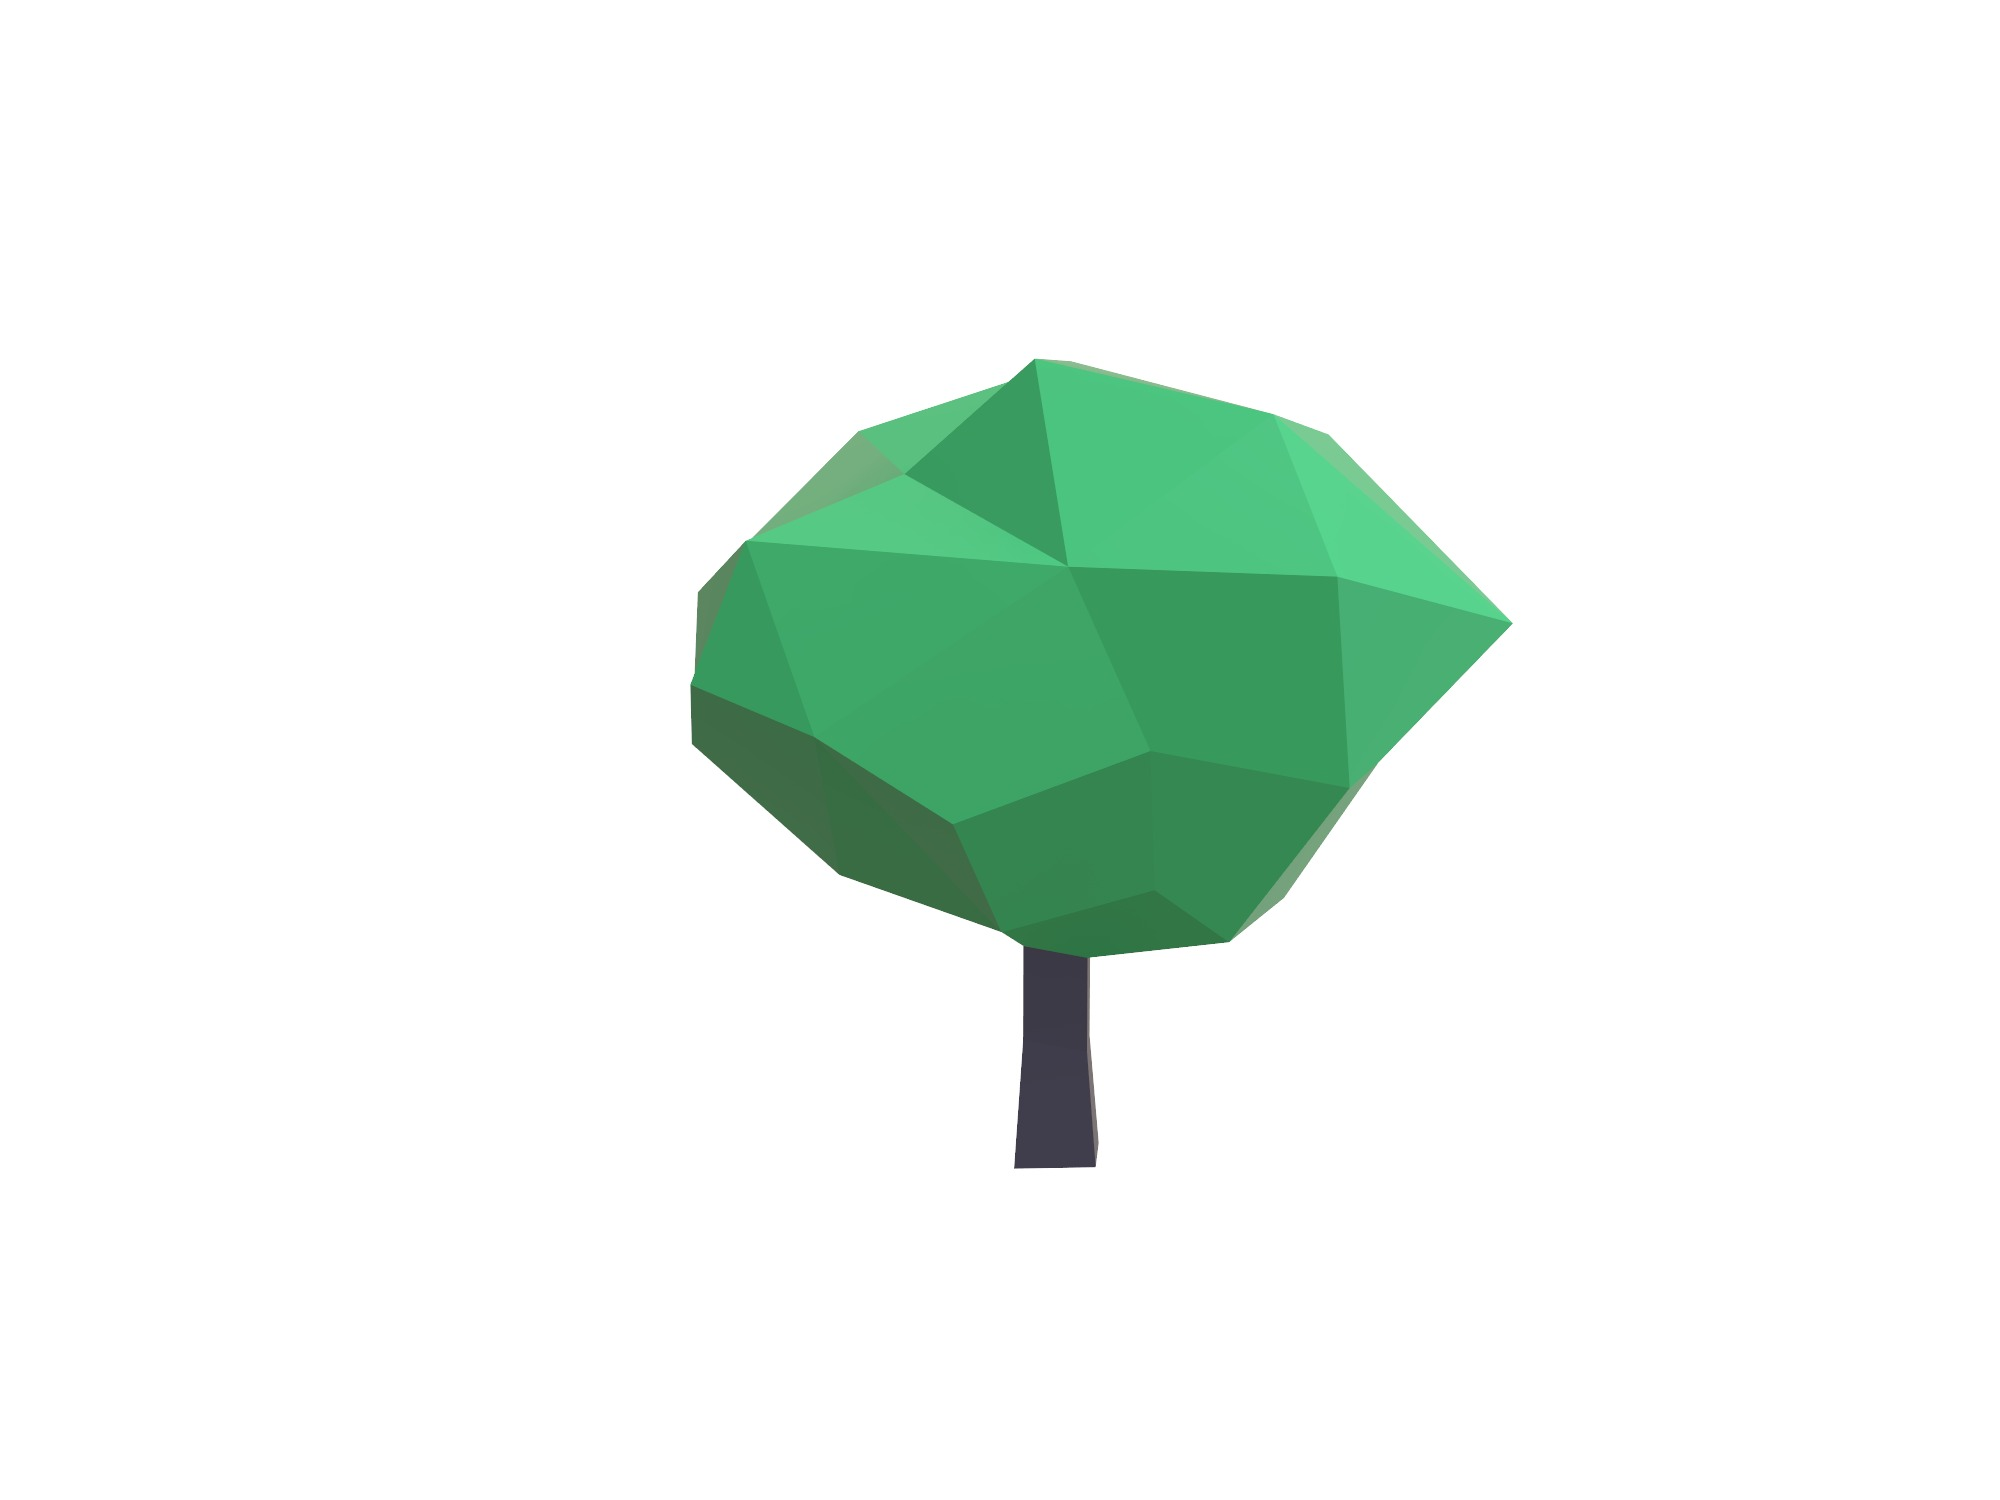 Low poly tree - 3D design by Vectary assets Jun 3, 2018